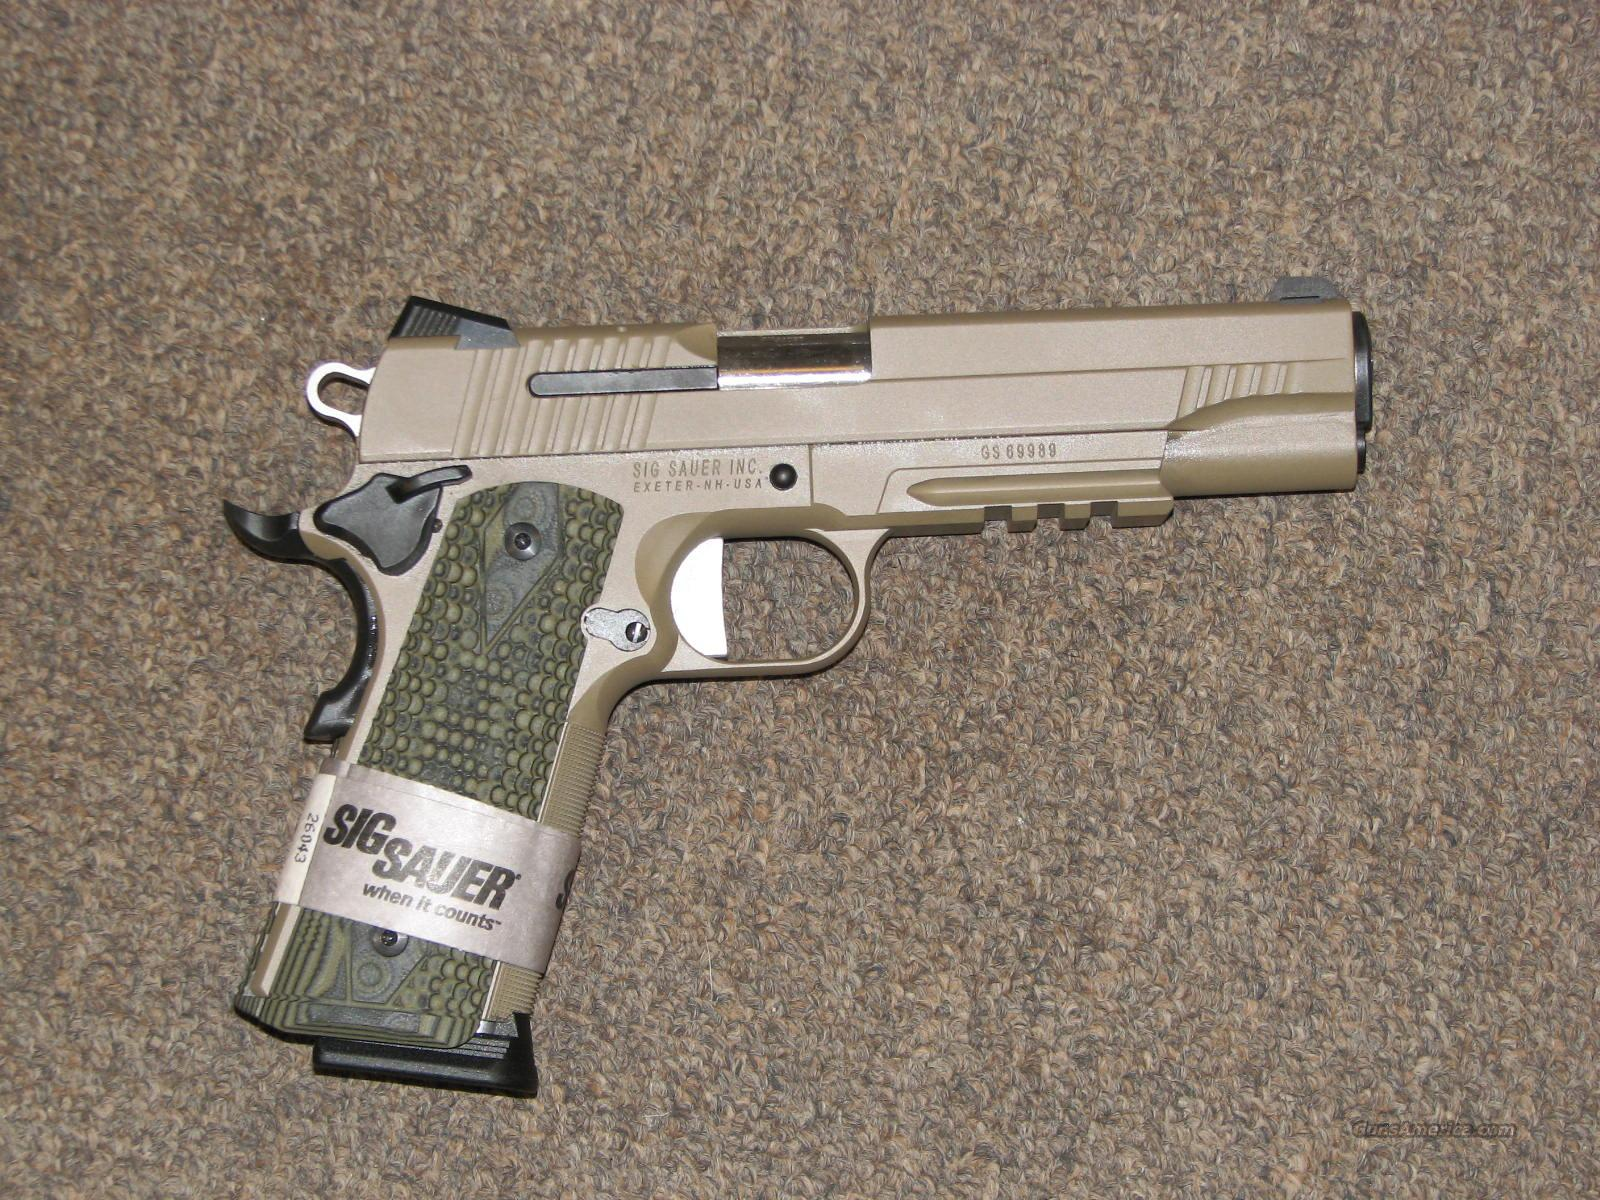 SIG SAUER 1911 CARRY SCORPION .45 ACP - NEW!!  Guns > Pistols > Sig - Sauer/Sigarms Pistols > 1911